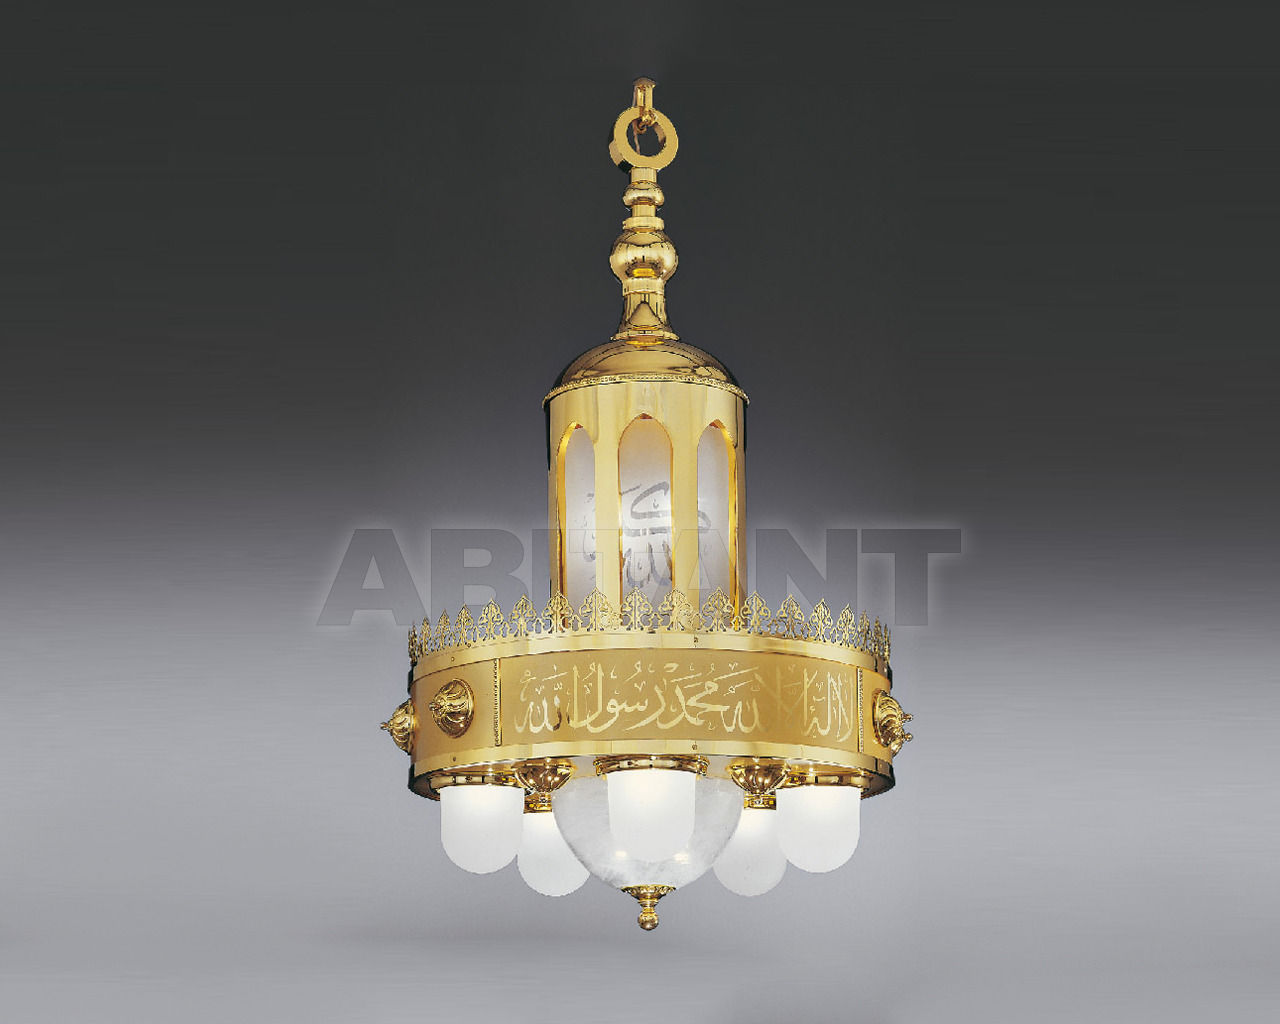 Купить Люстра Asfour Crystal Crystal 2013 CH S. ZEINAB 67 * 135 Glass Gold Without Lamps